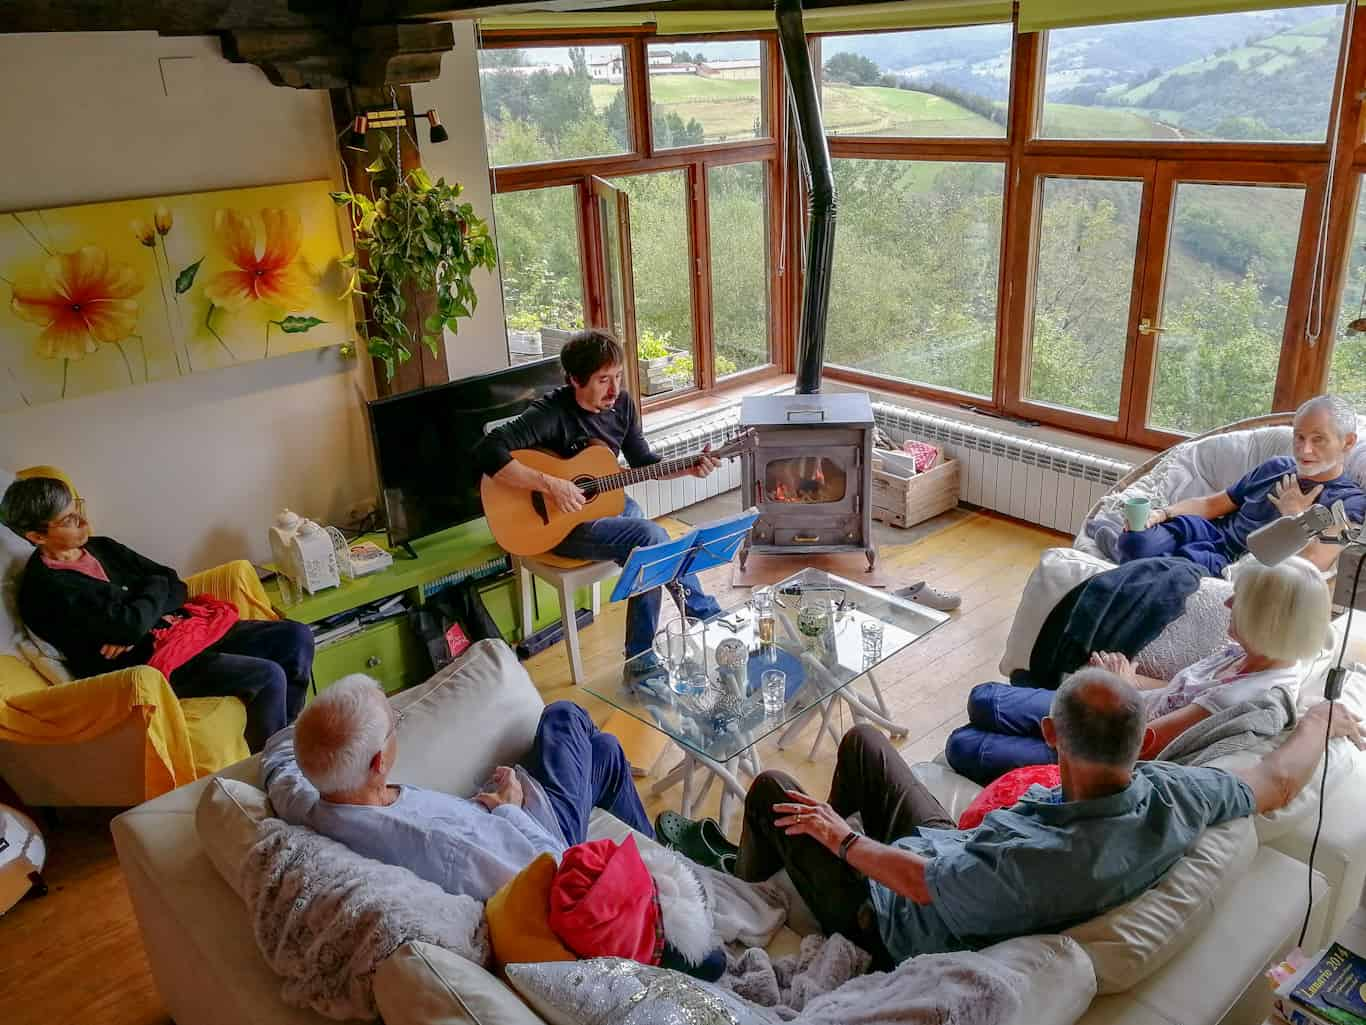 basque music concerts in the Pyrenees